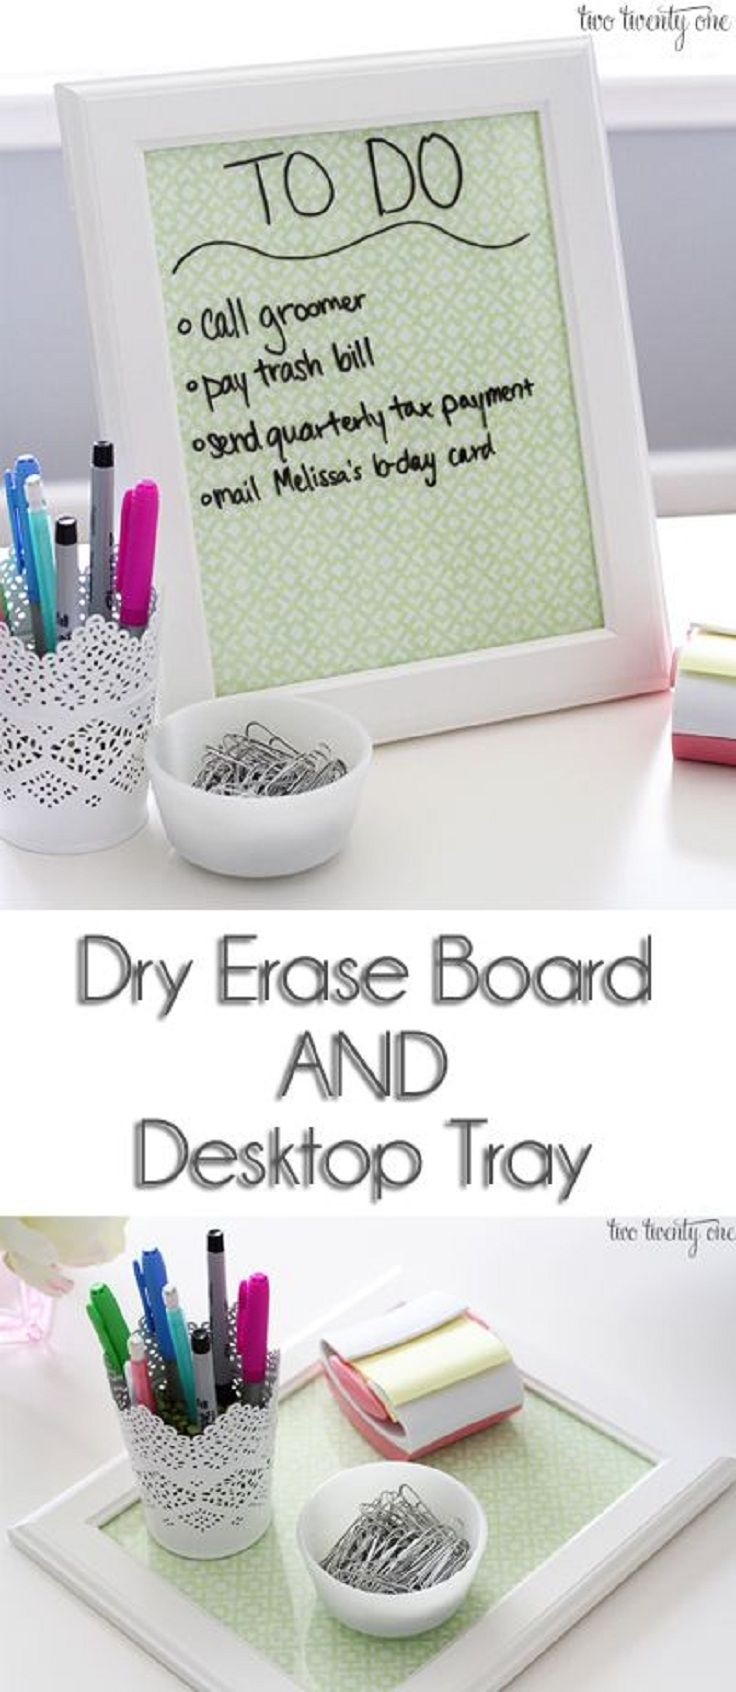 nike 5 0 shoes for men Top 10 DIY Office Organization Tutorials   dry erase board and desktop tray